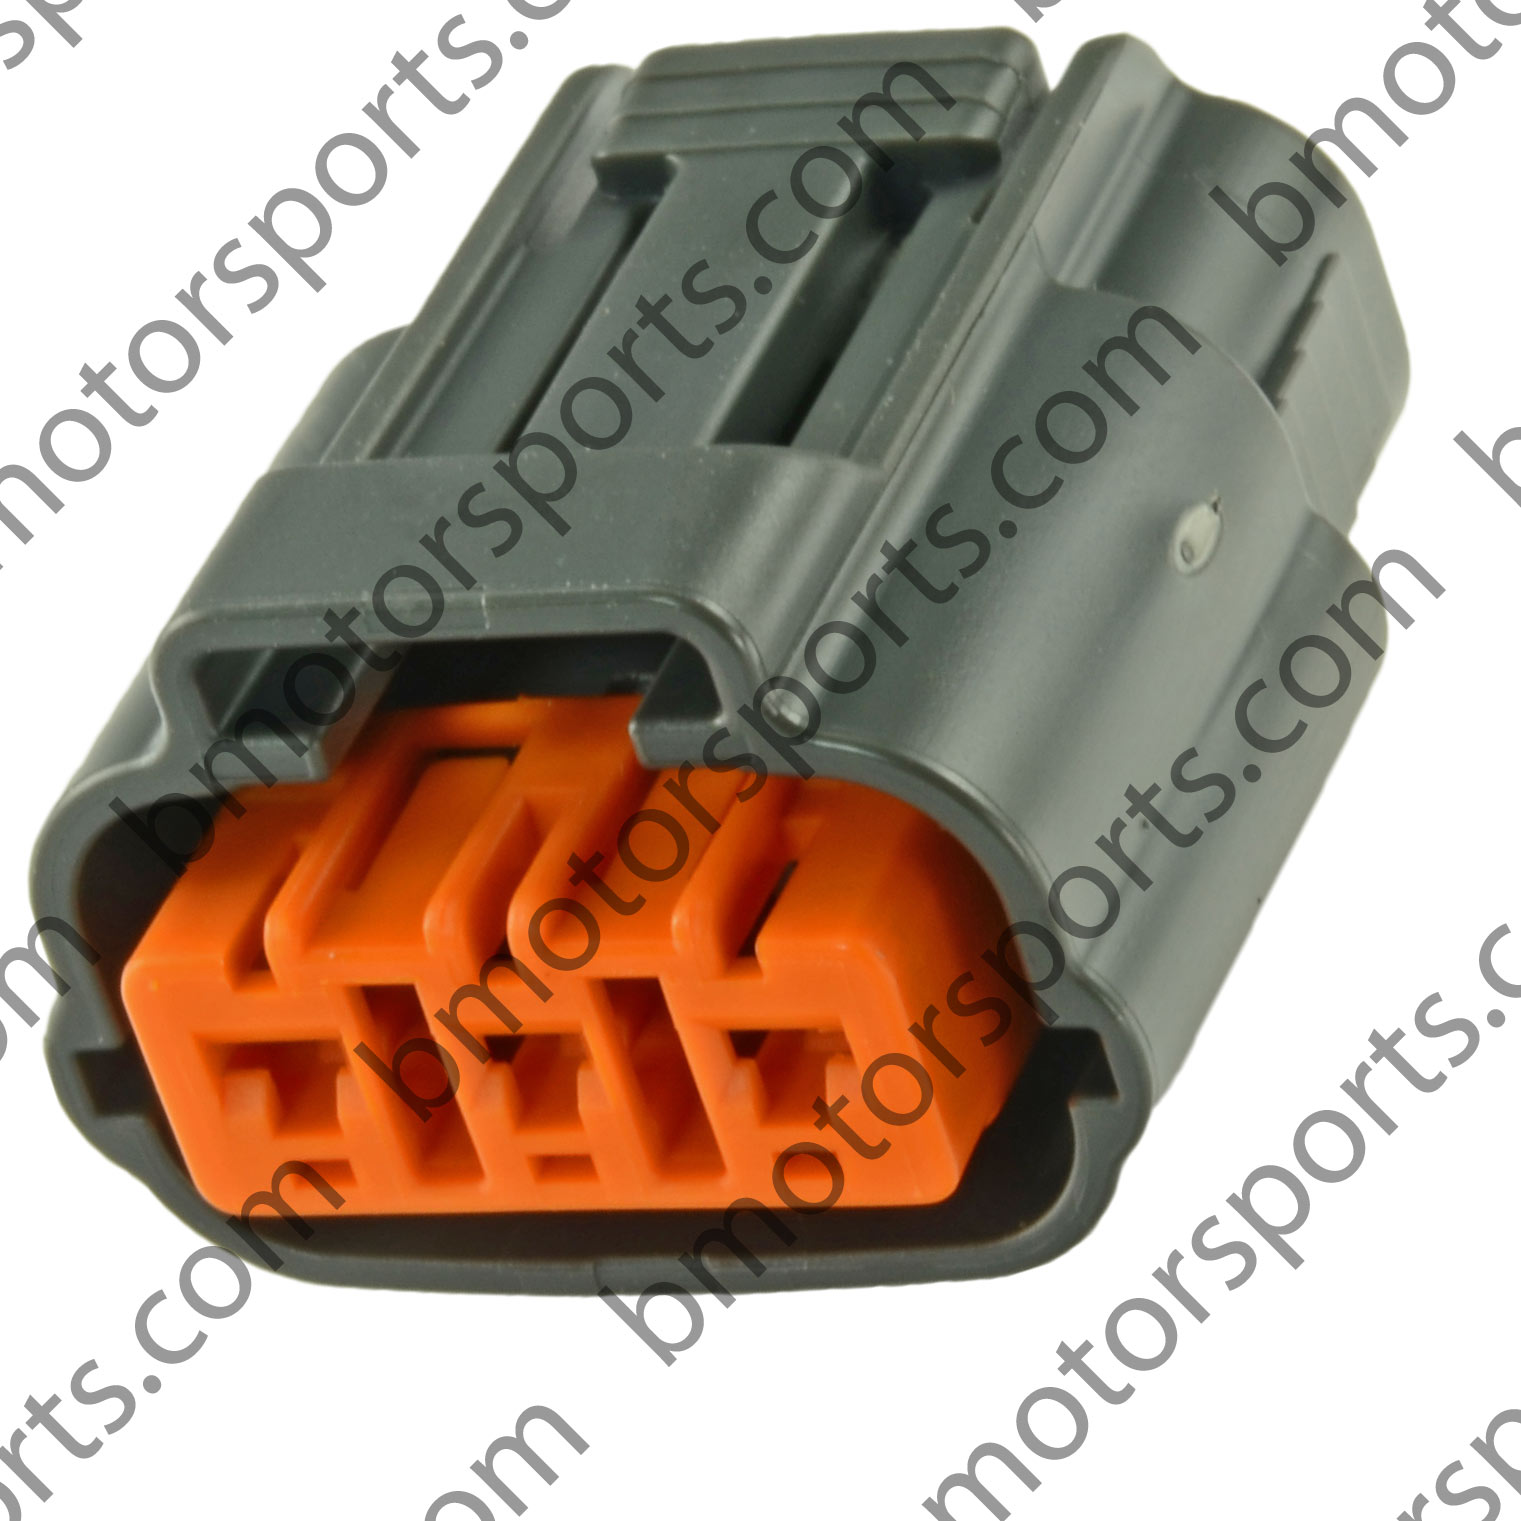 Home » Shop » Connectors / Harnesses » Sumitomo » 3 Way Plug kit for ...